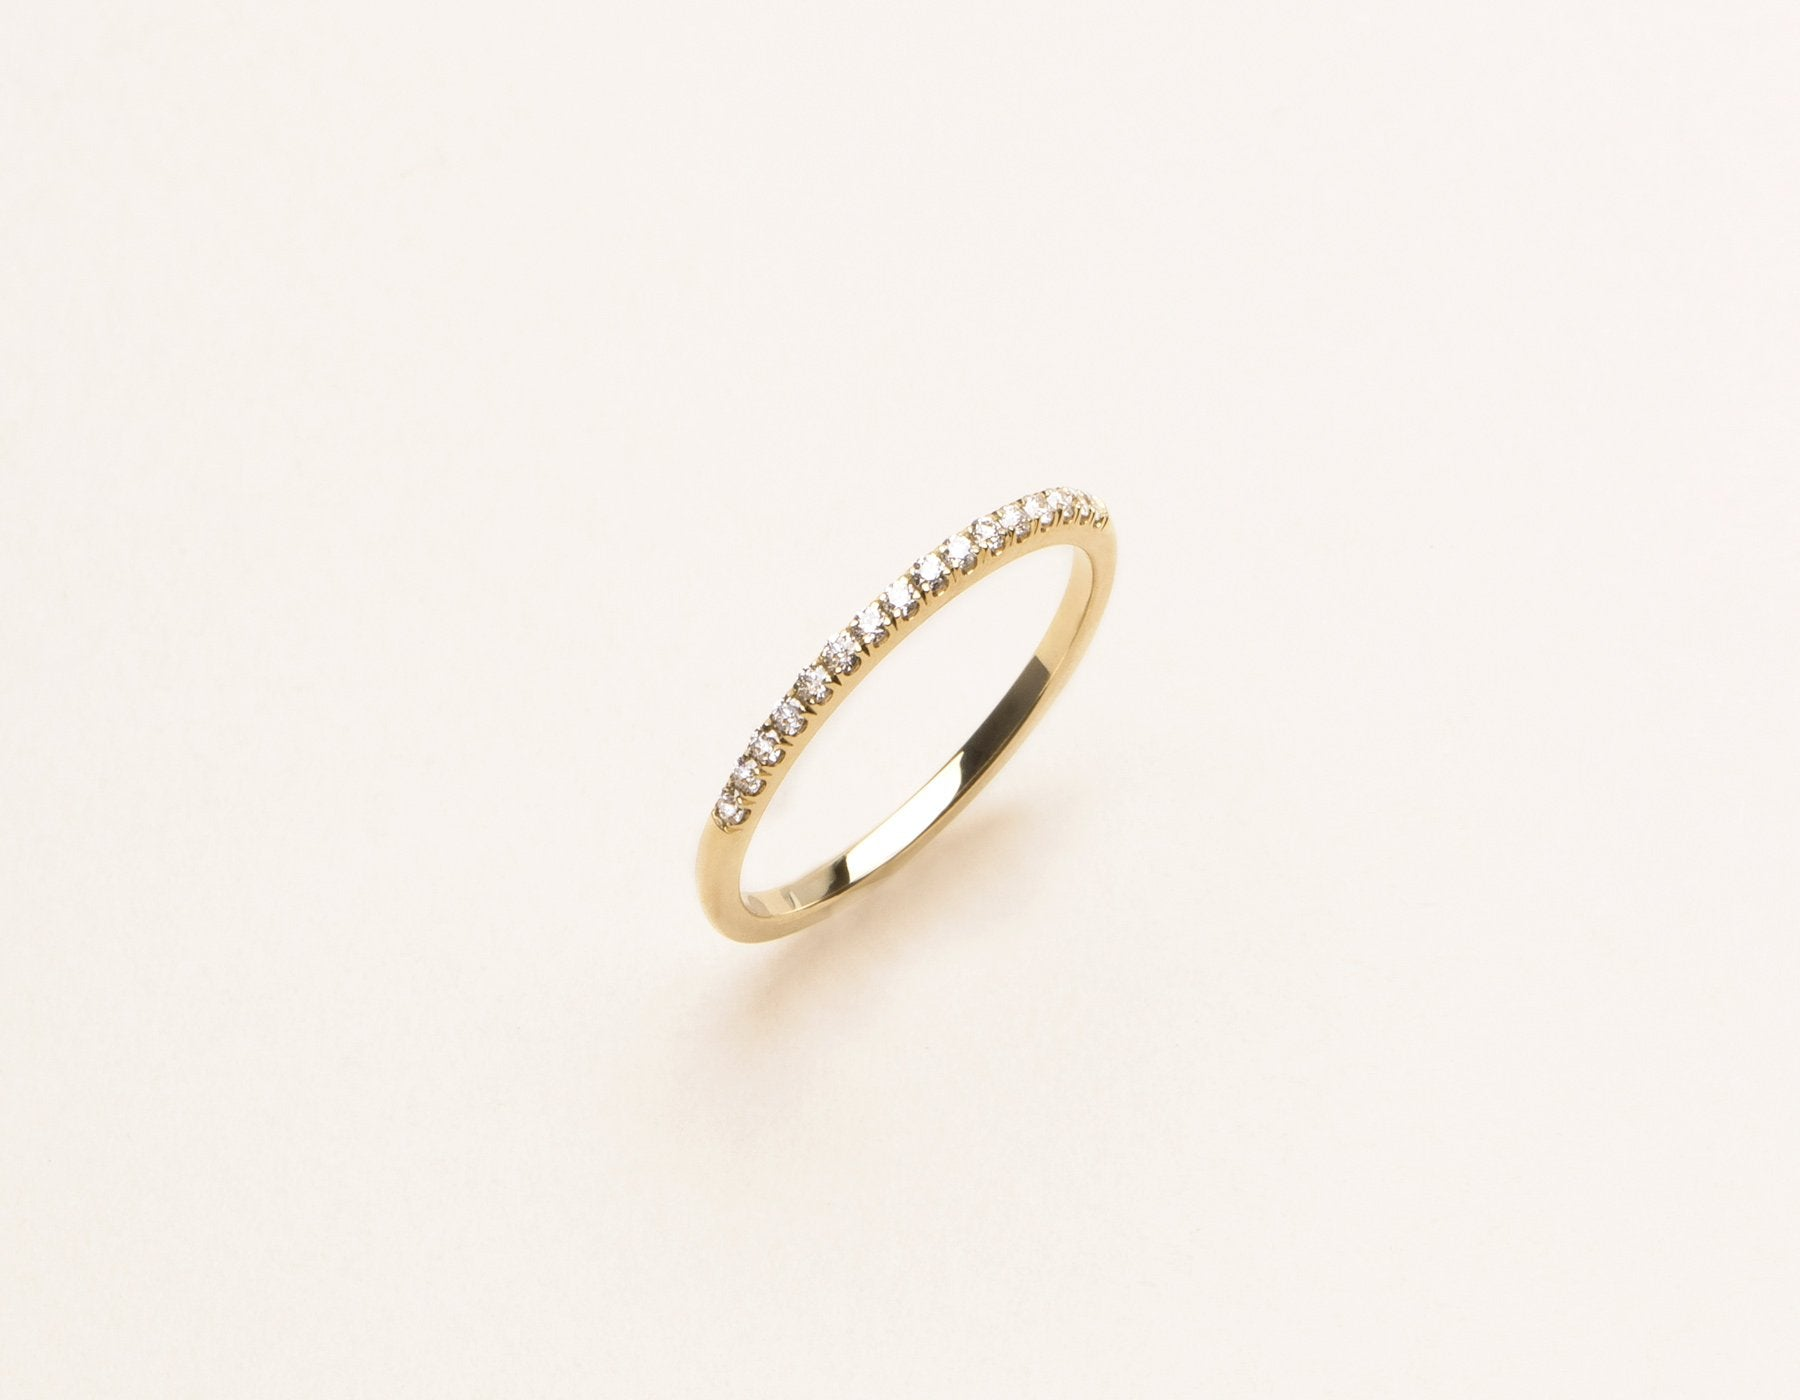 Classic minimalist Petite Diamond Pave Band ring 14k solid gold Vrai & Oro sustainable jewelry, 14K Yellow Gold